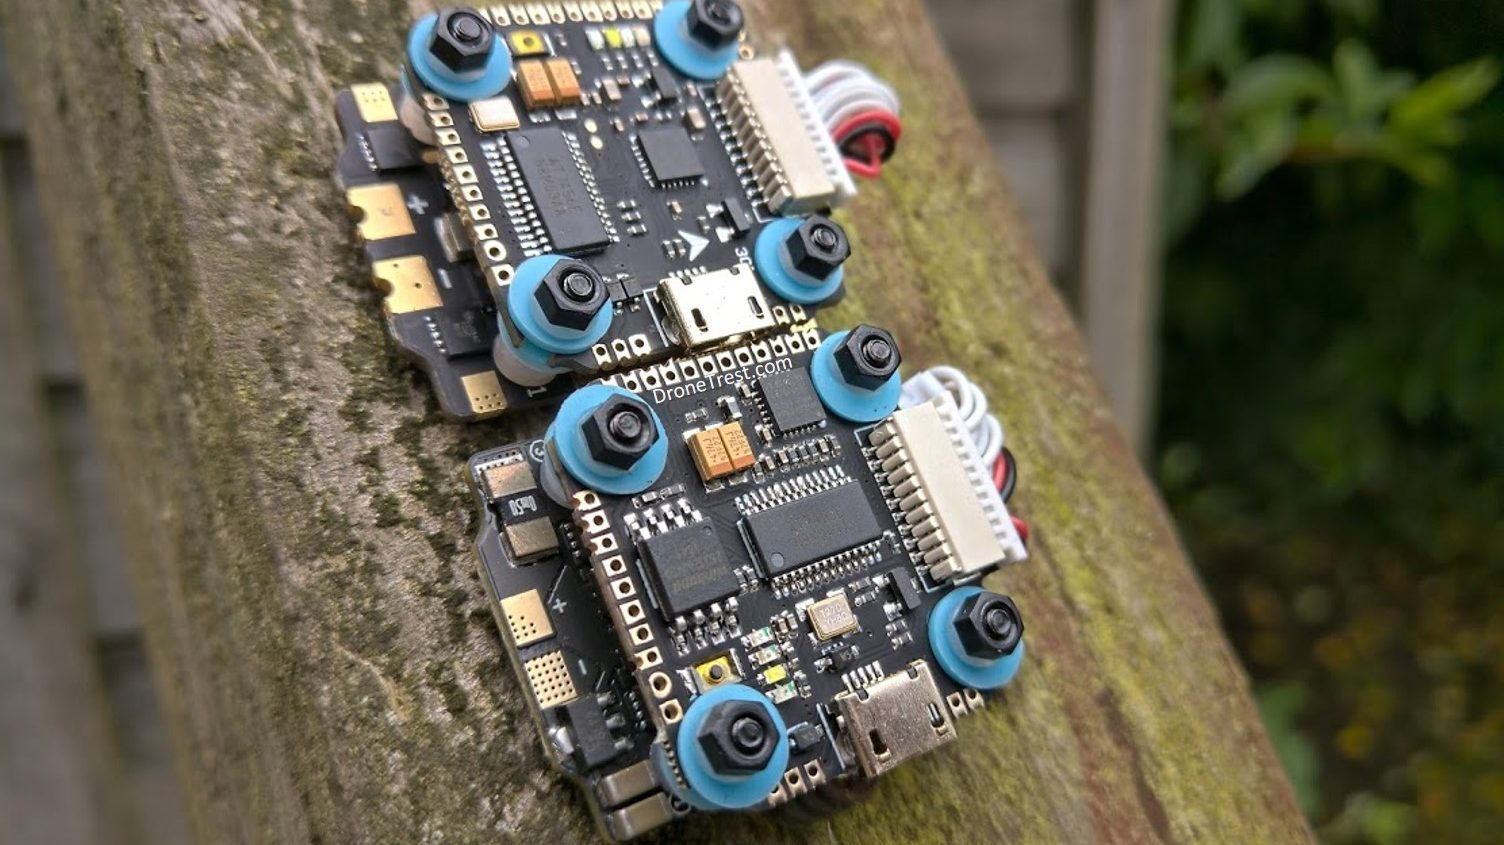 Latest drone news, tutorials and reviews - Arduino based Arducopter